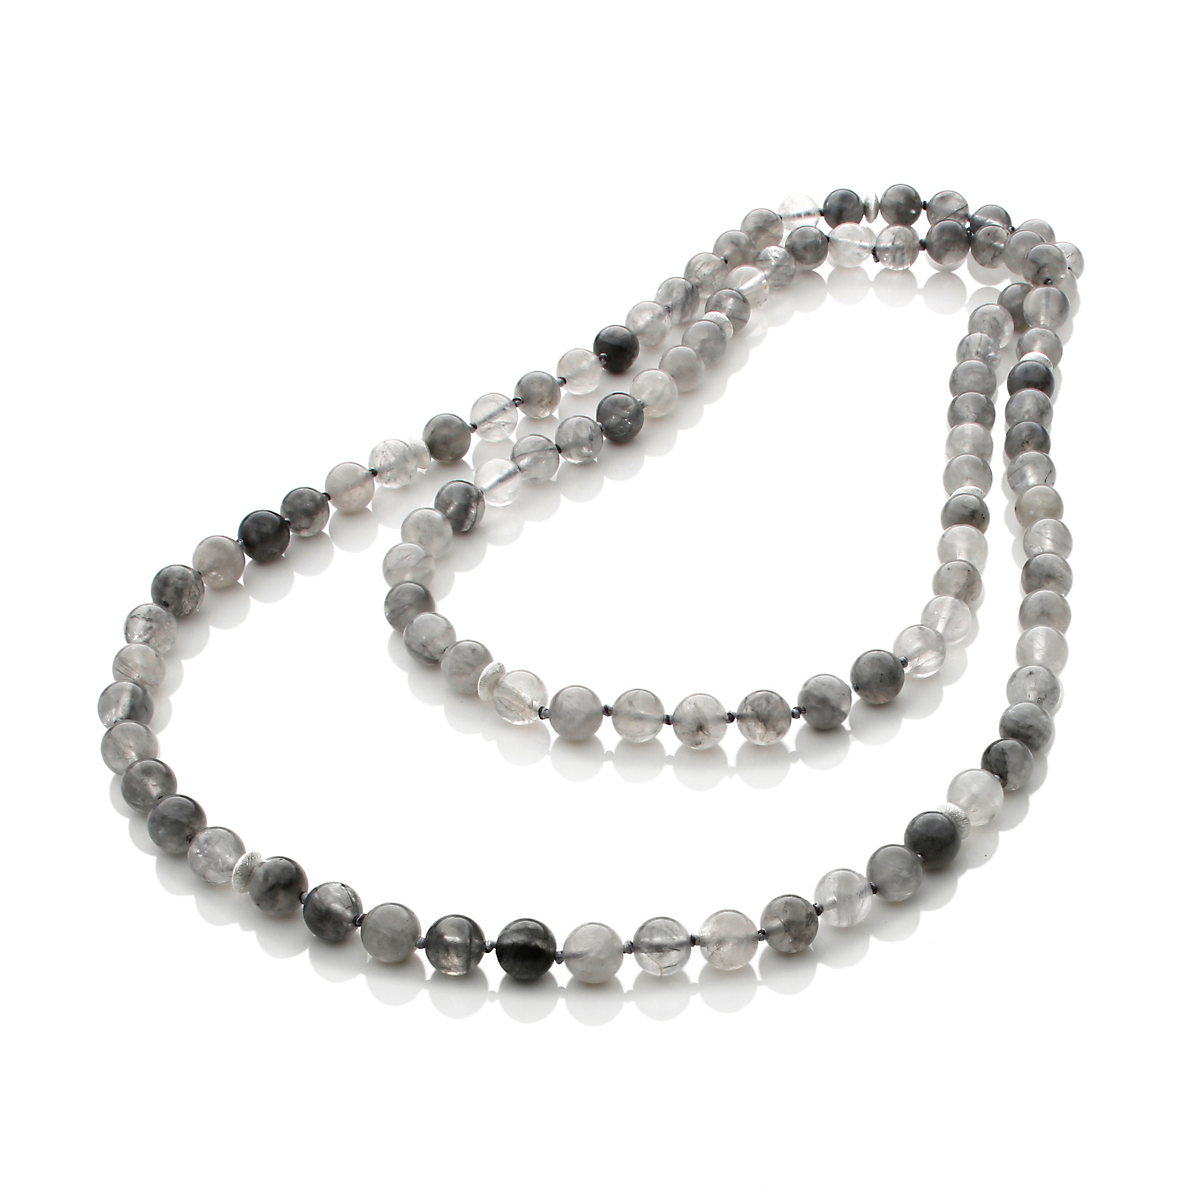 Gump's Multigray Quartz Bead Rope